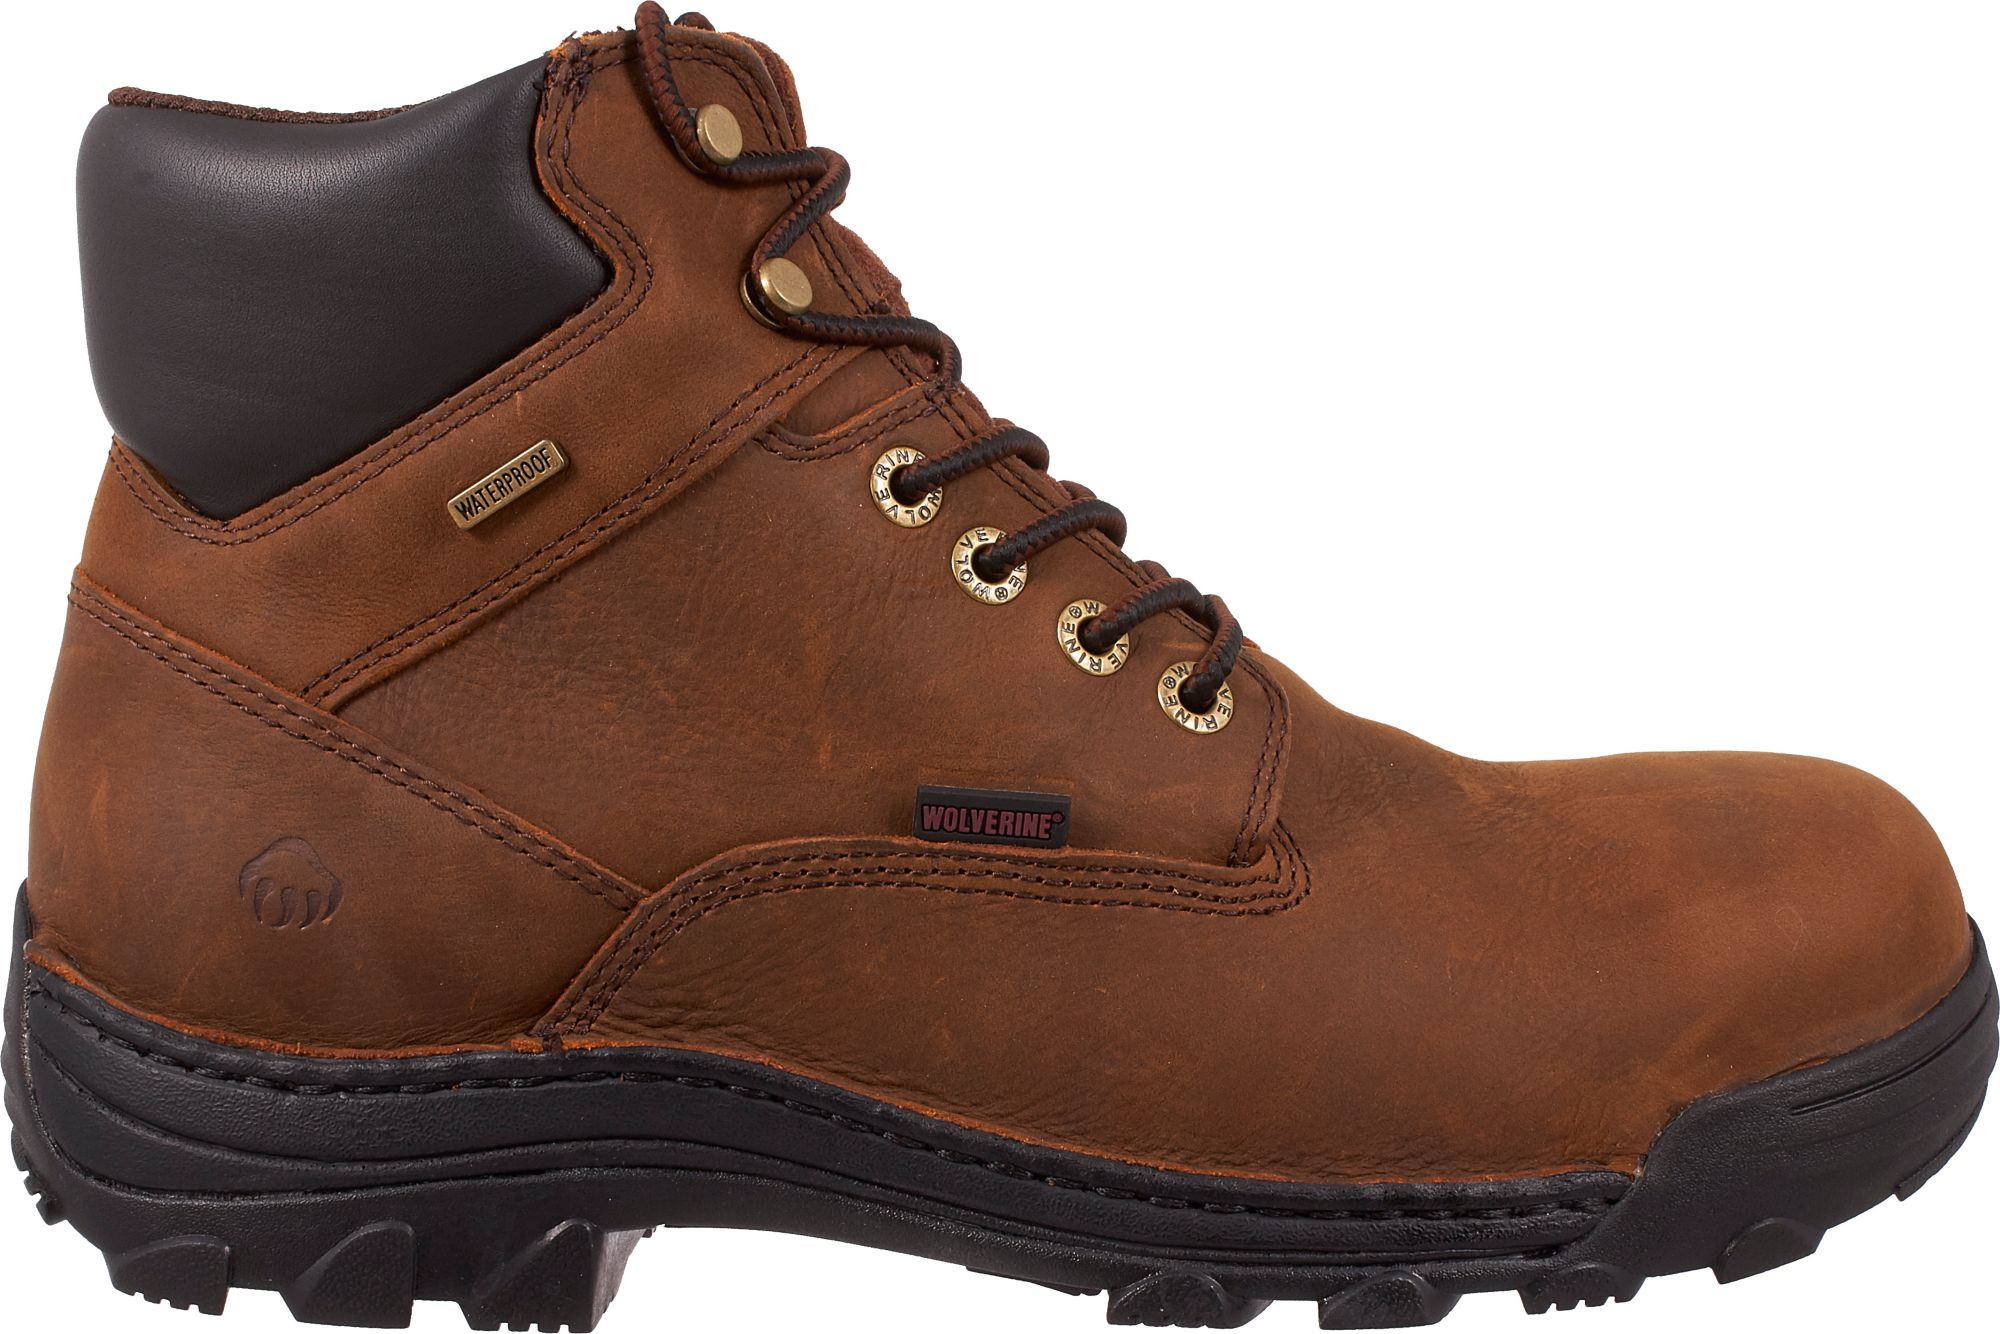 Wolverine Men's Durbin 6'' Waterproof Steel Toe Work Boots| DICK'S ...